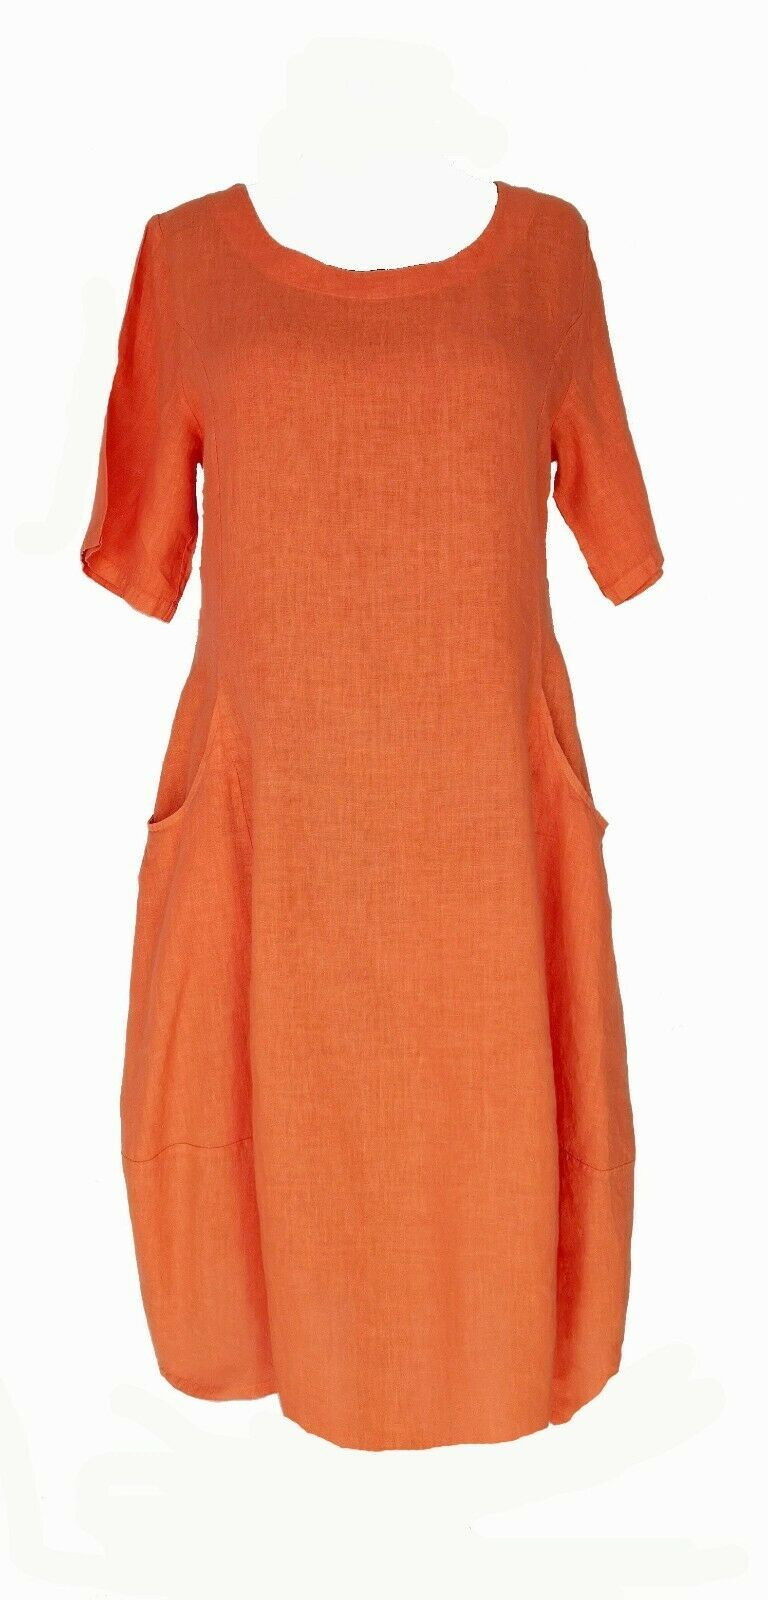 Pin on Orange Kleid